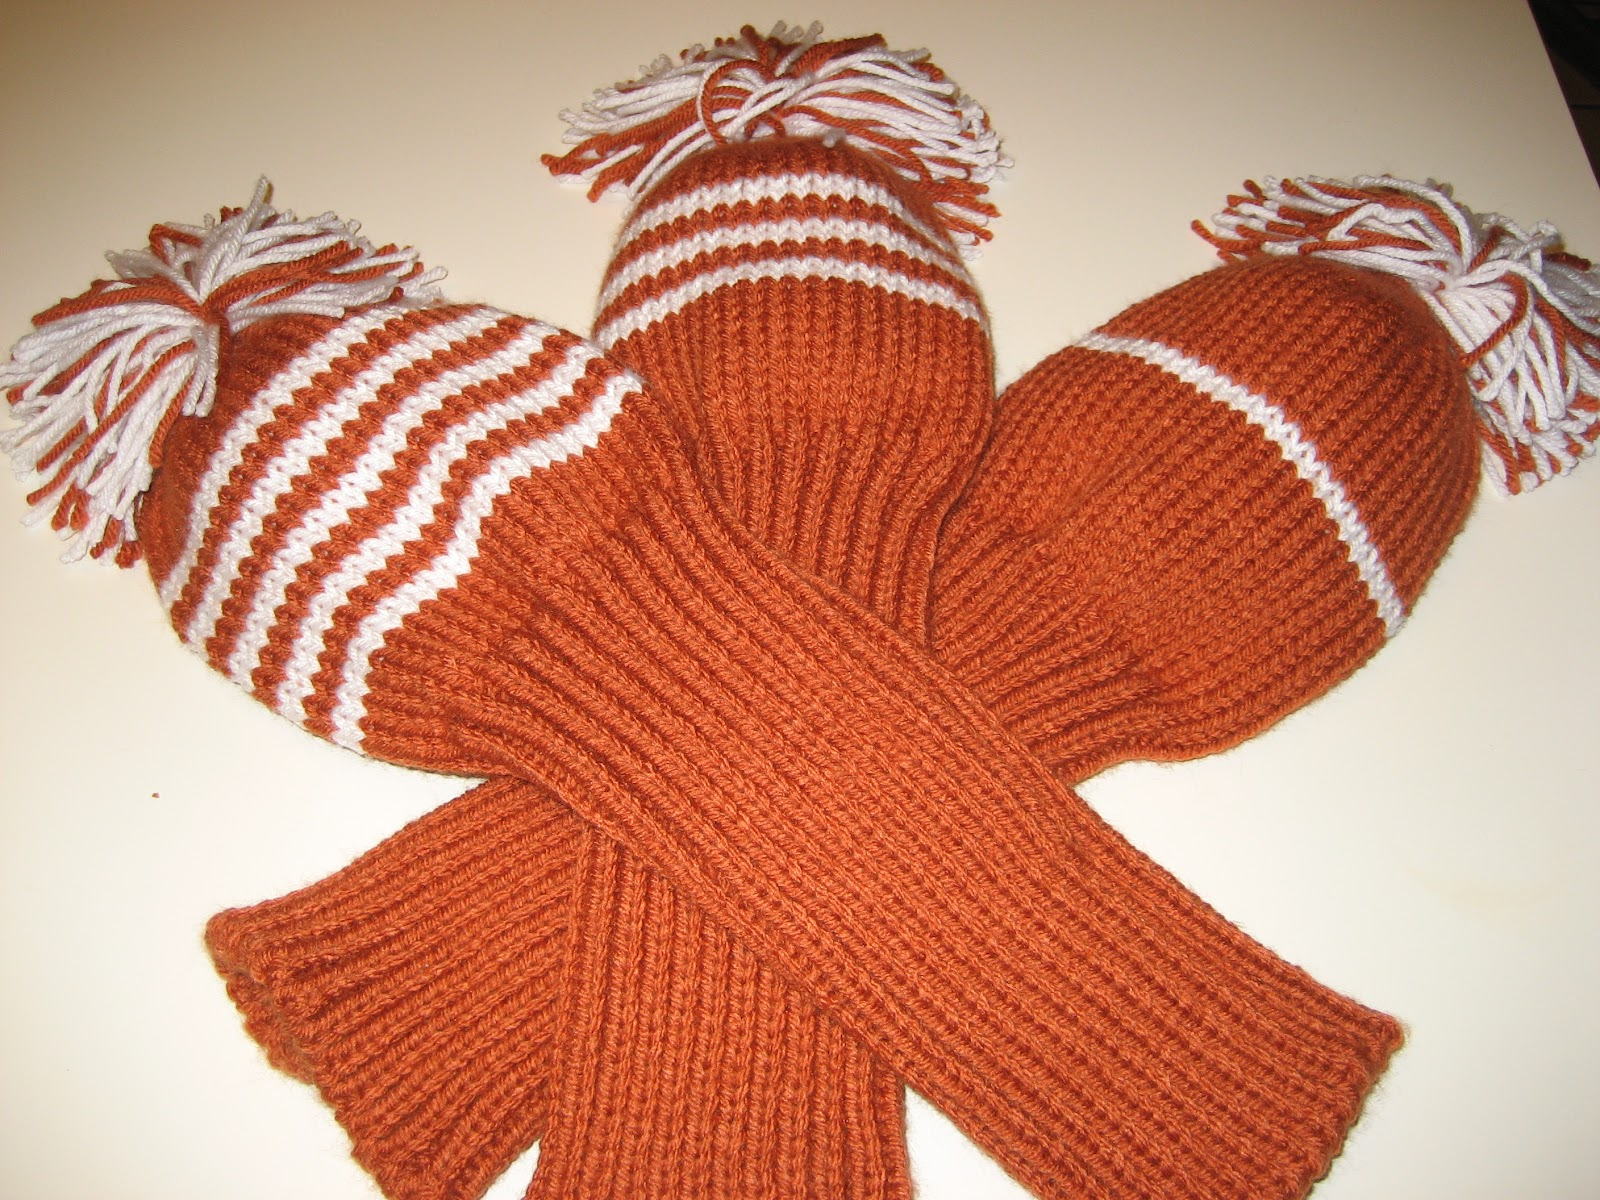 Knitted Golf Club Covers Pattern Free : Diana natters on... about machine knitting: Golf Club Covers